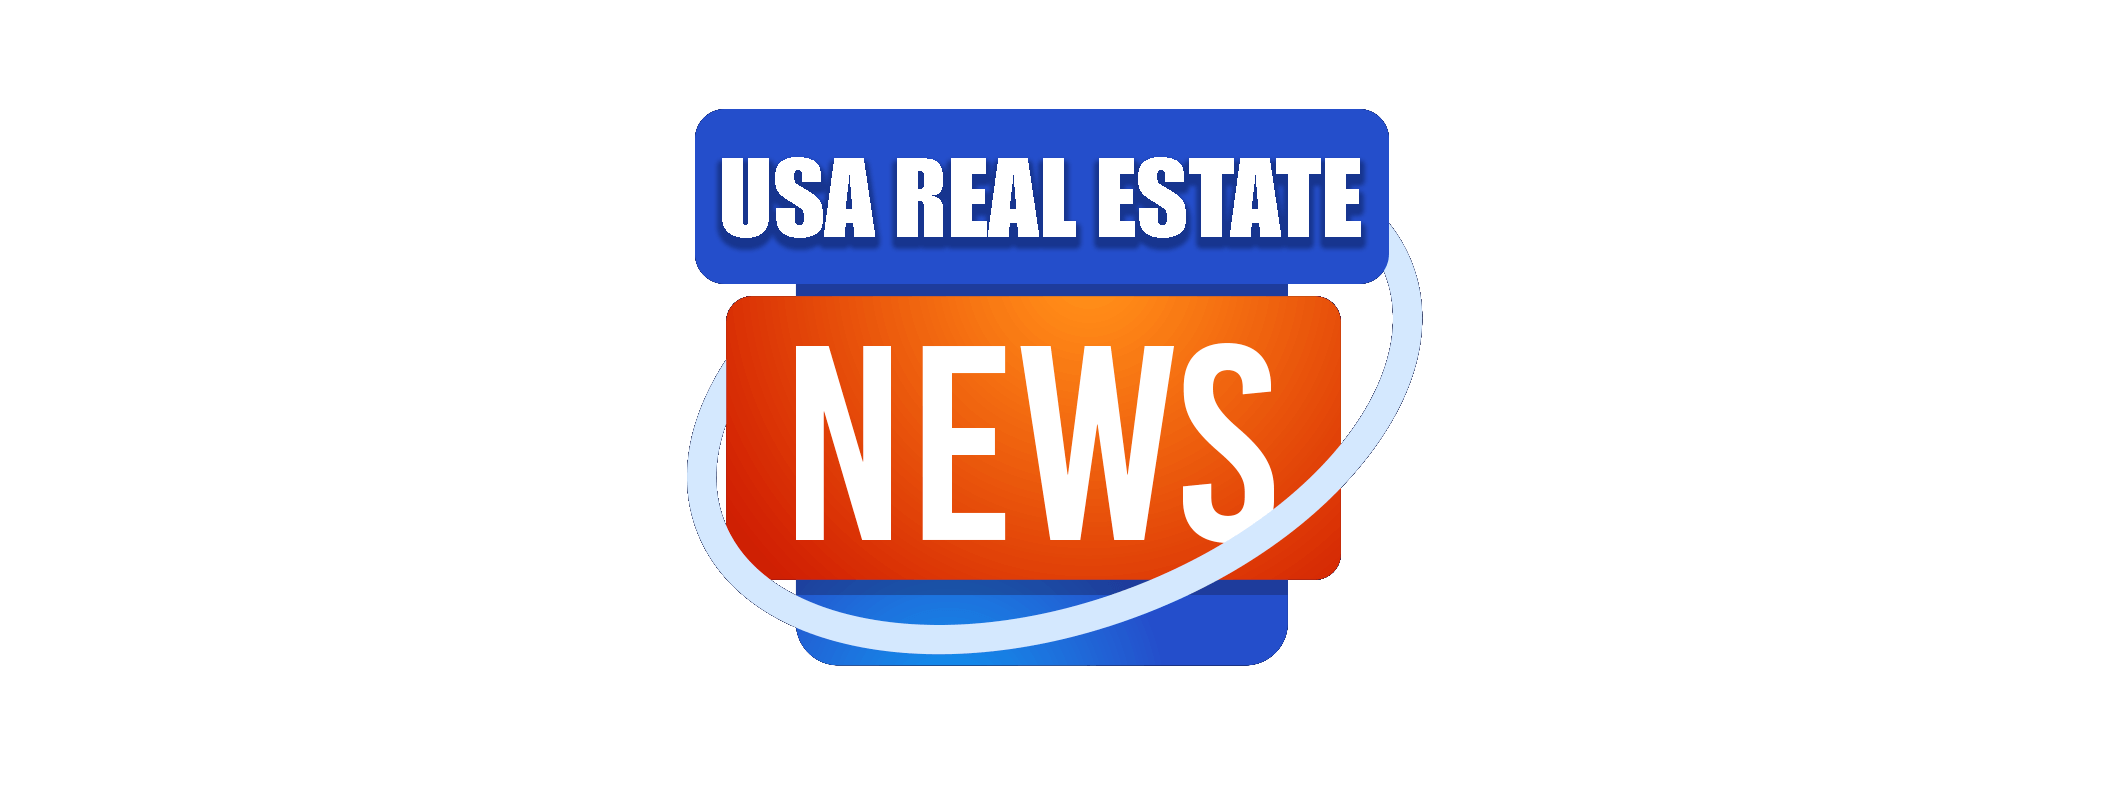 USA Real Estate News